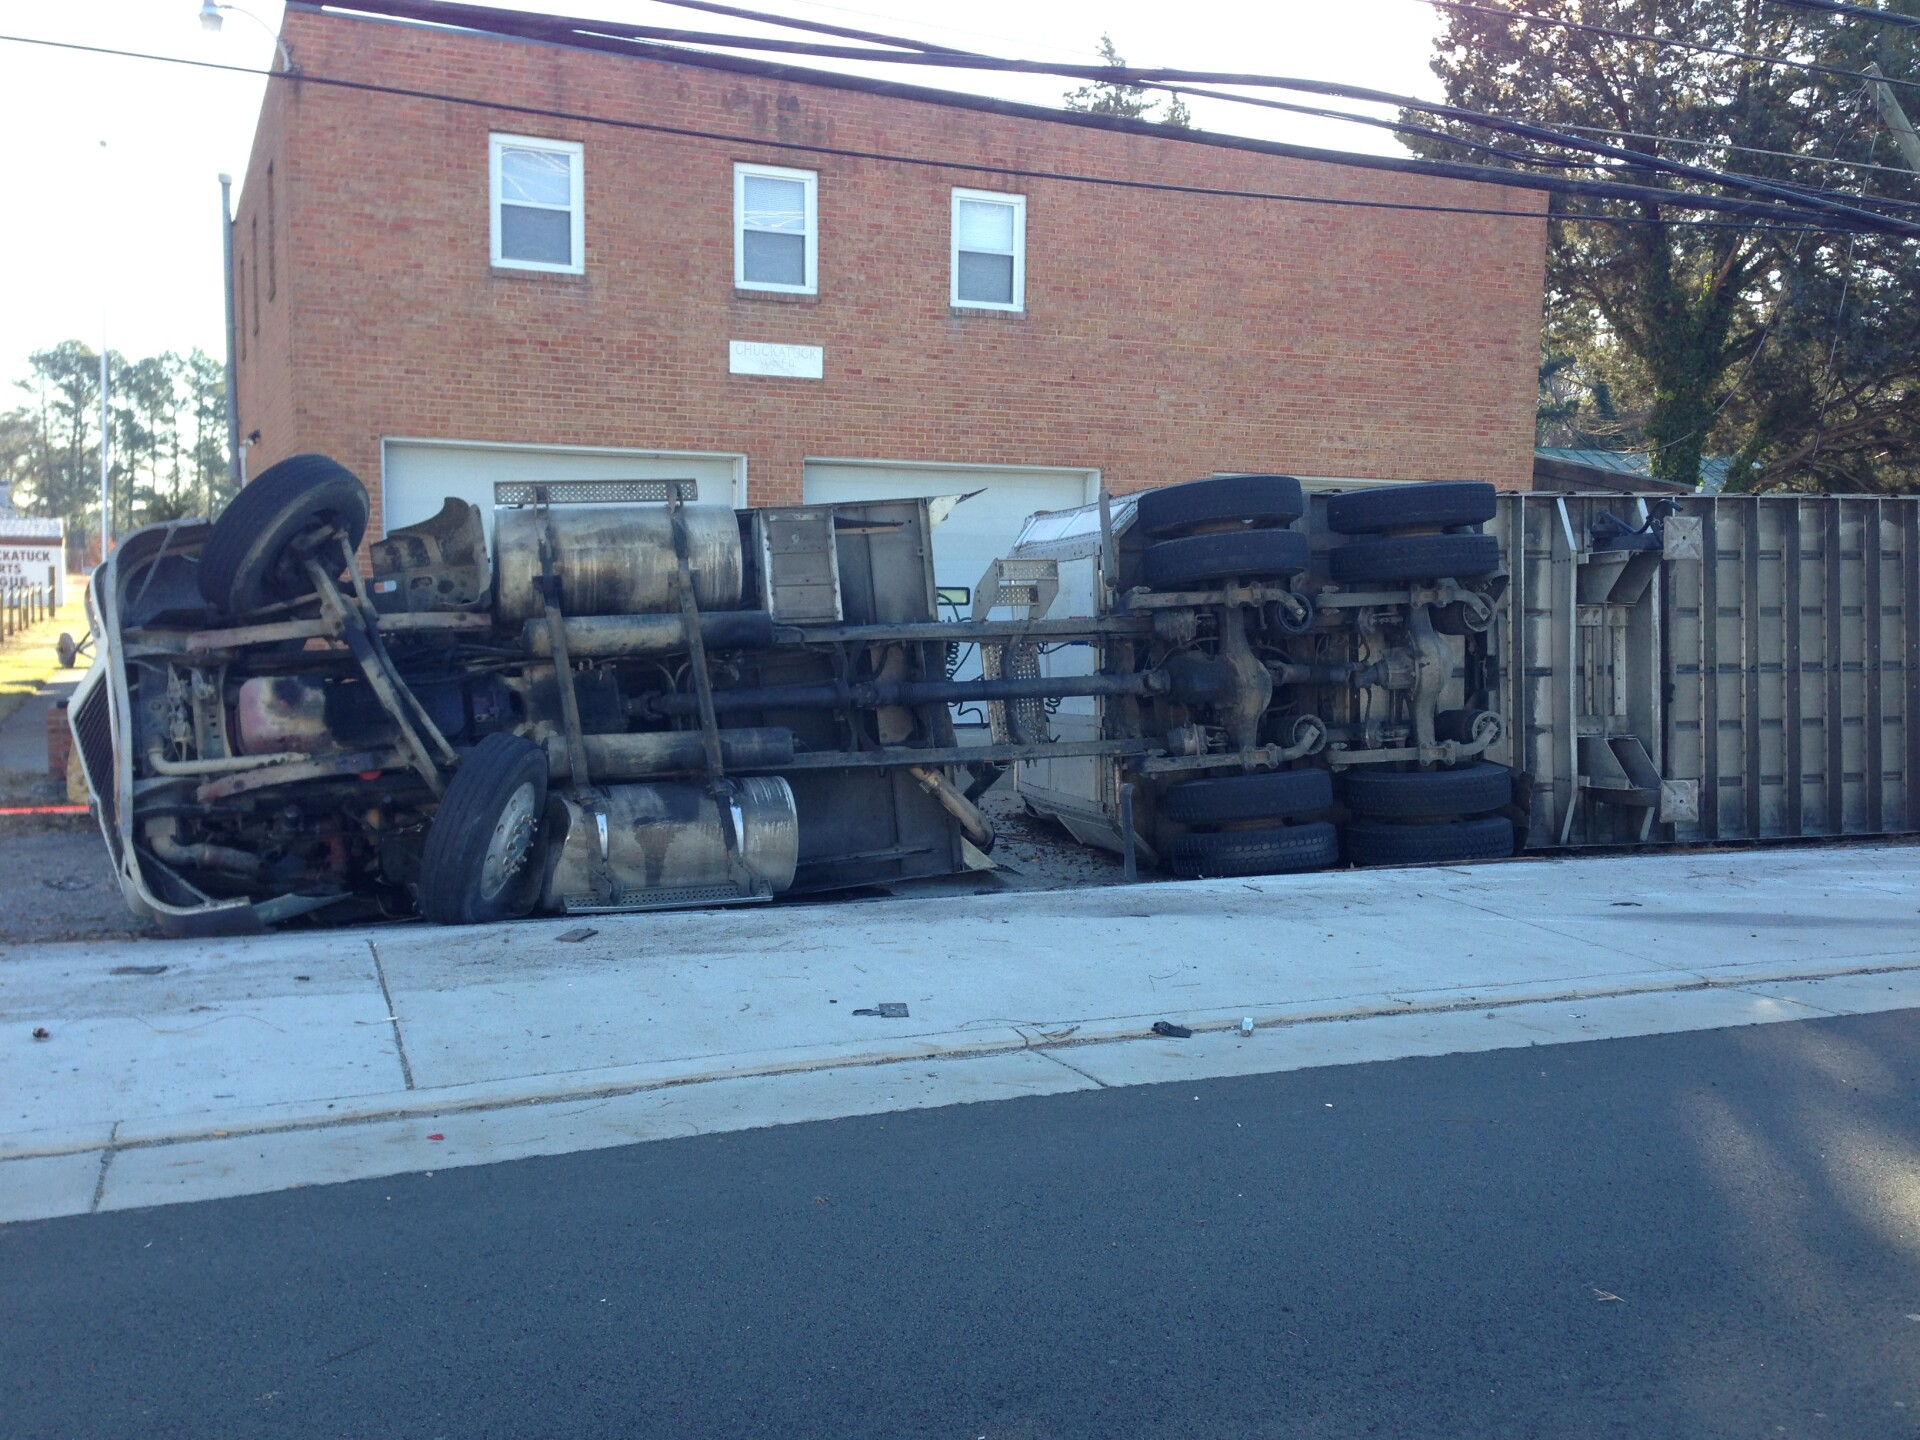 Photos: Rt. 10 in Chuckatuck reopens after tractor-trailer rollover